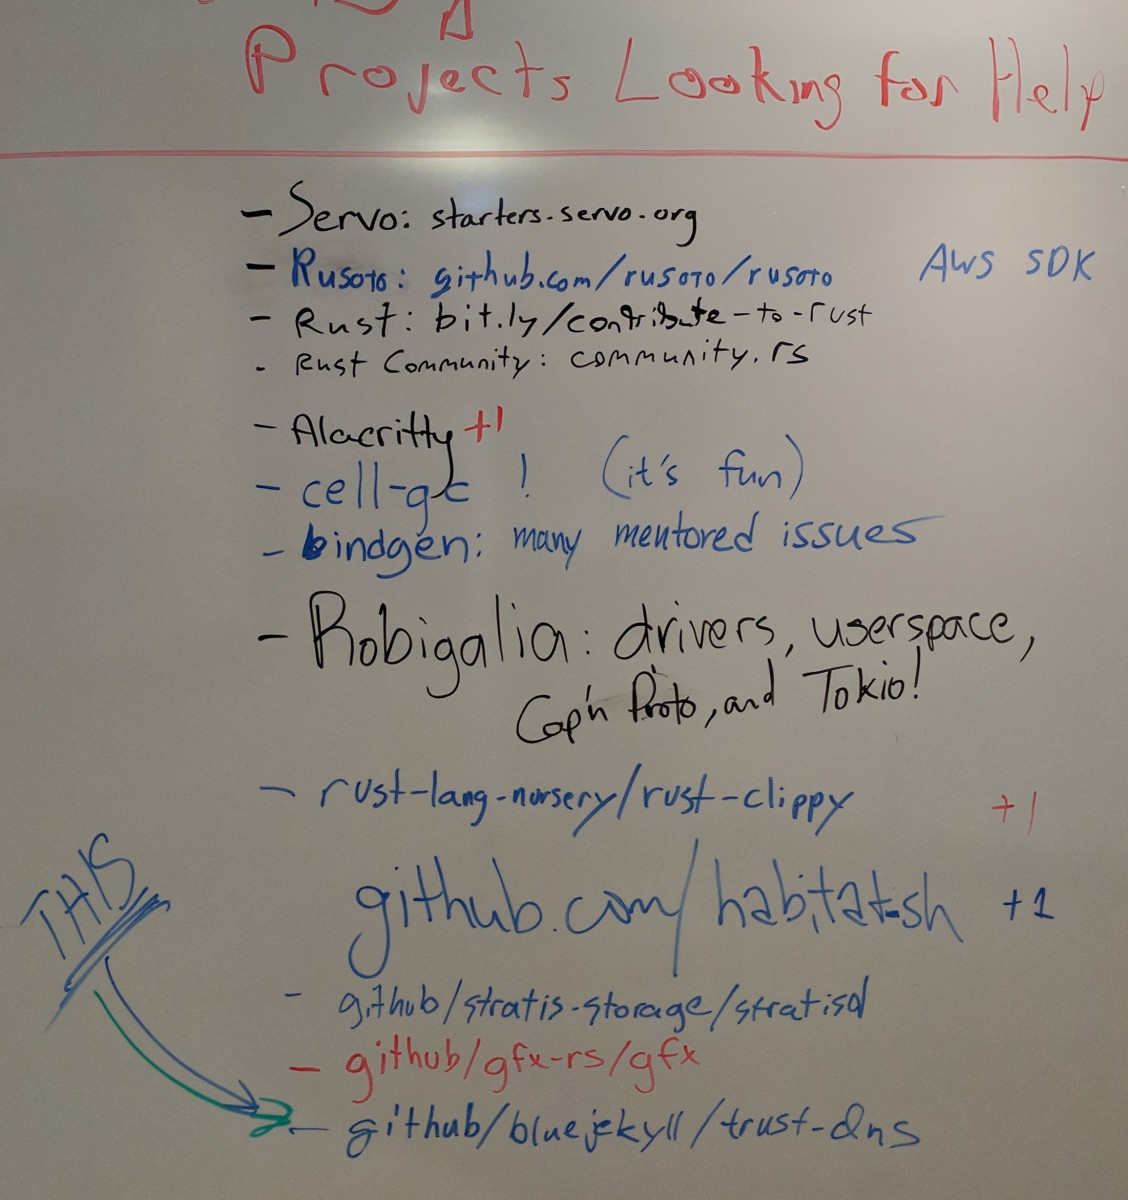 A photo of a whiteboard from RustConf 2017 which lists projects looking for help.